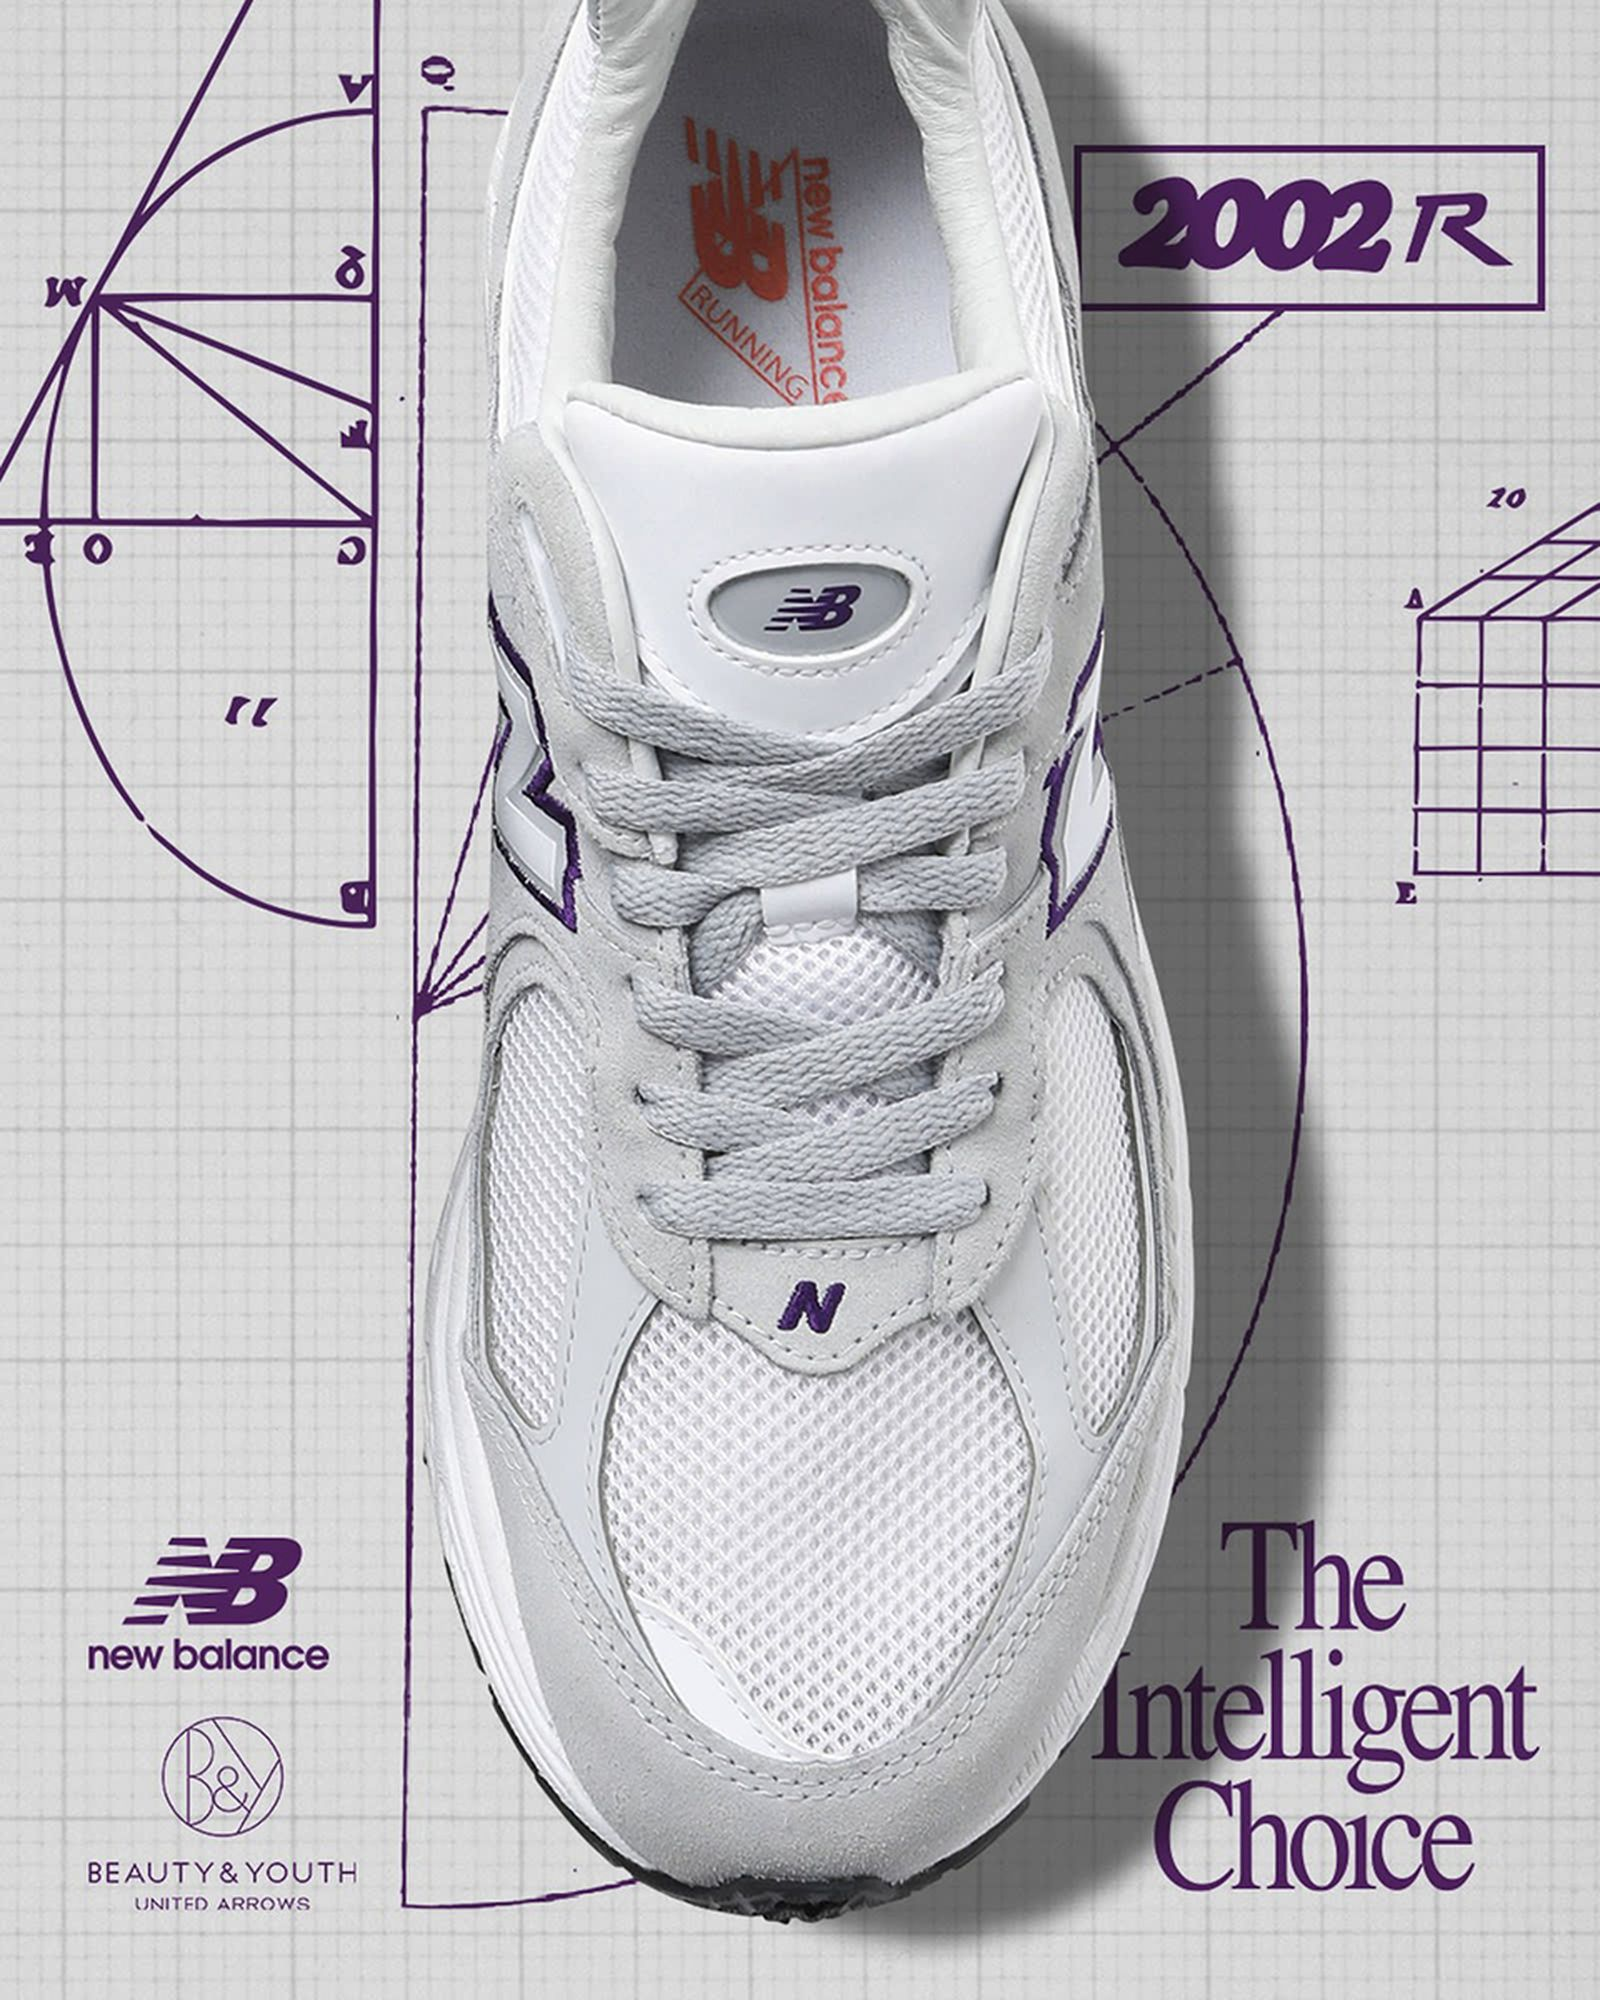 beauty youth united arrows new balance 2002r collab (3)